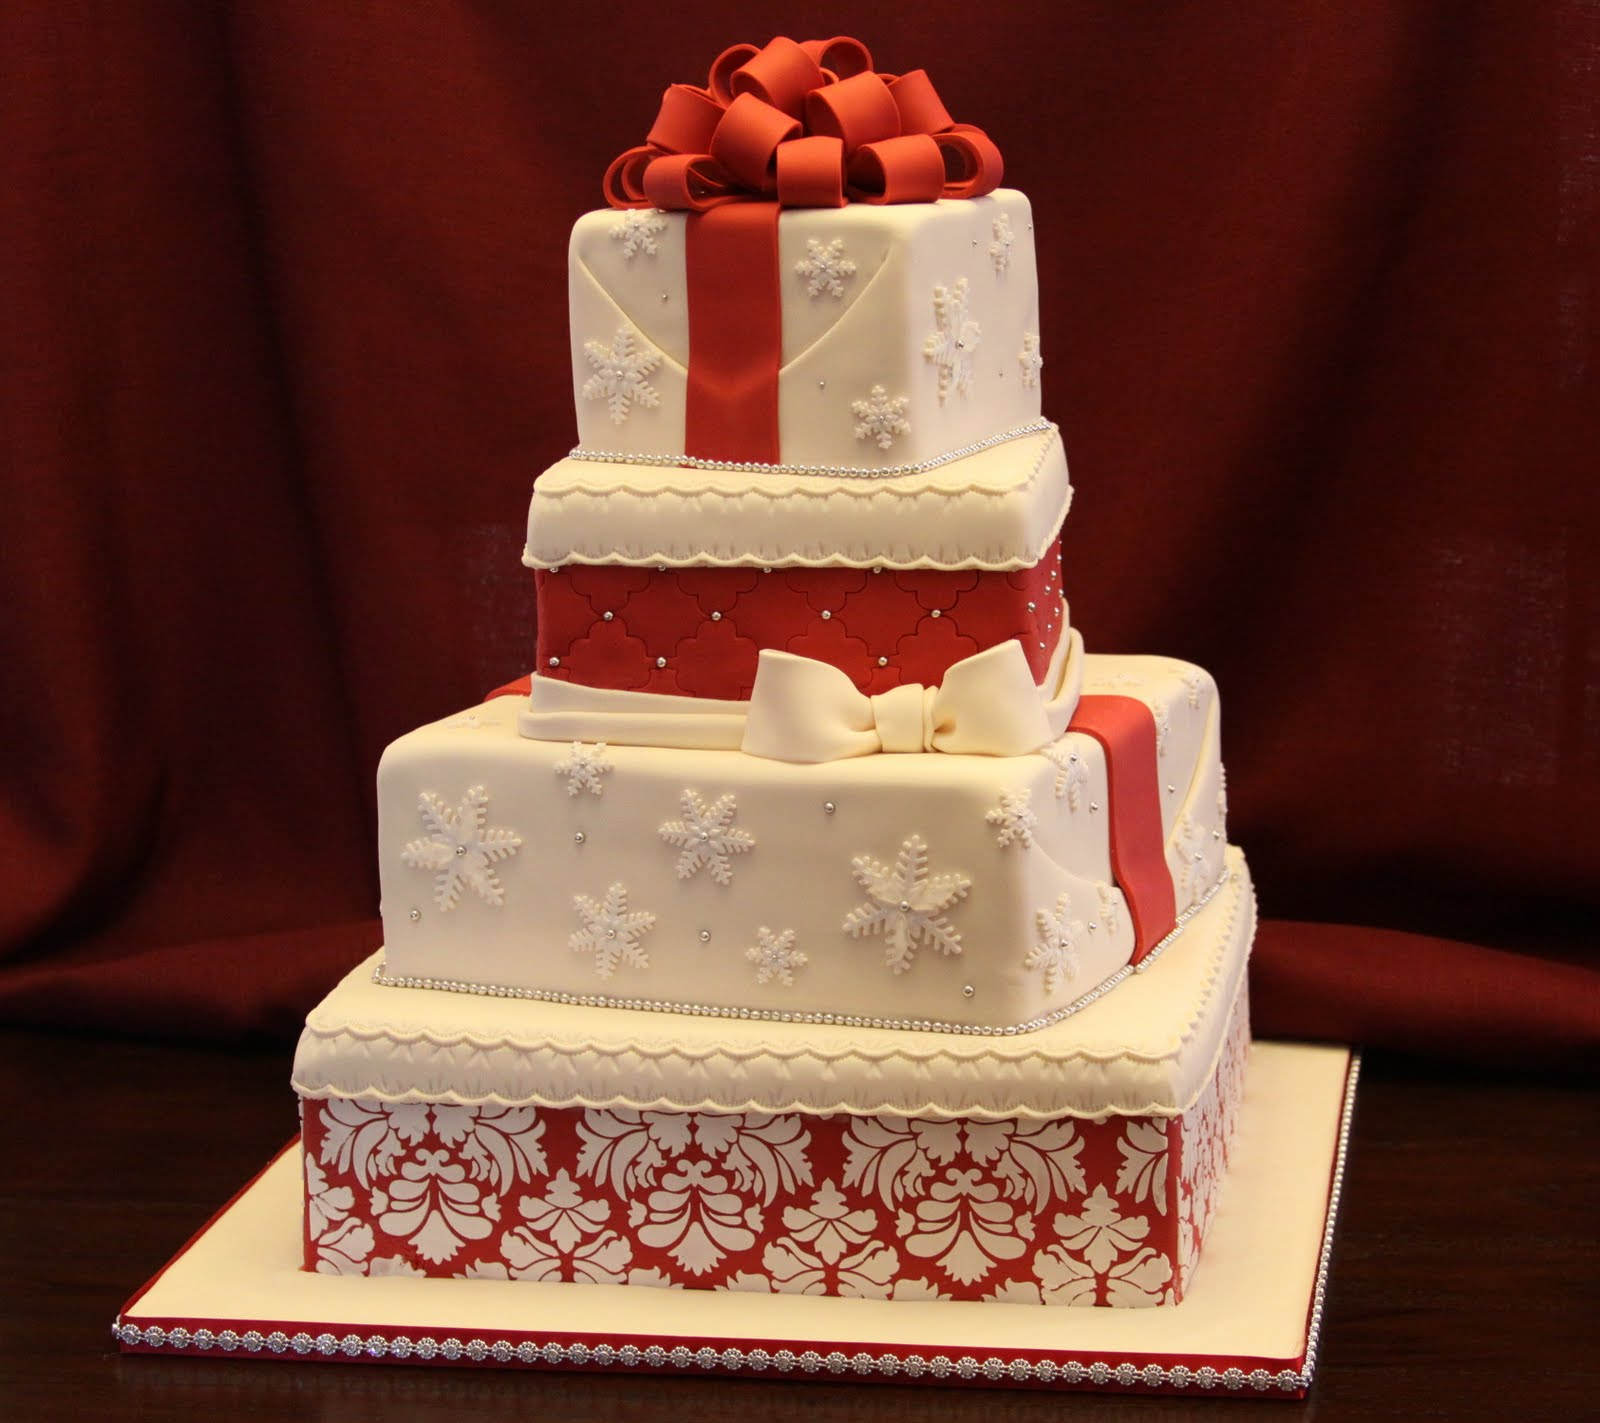 A Christmas Wedding: .: Christmas Wedding C Ake